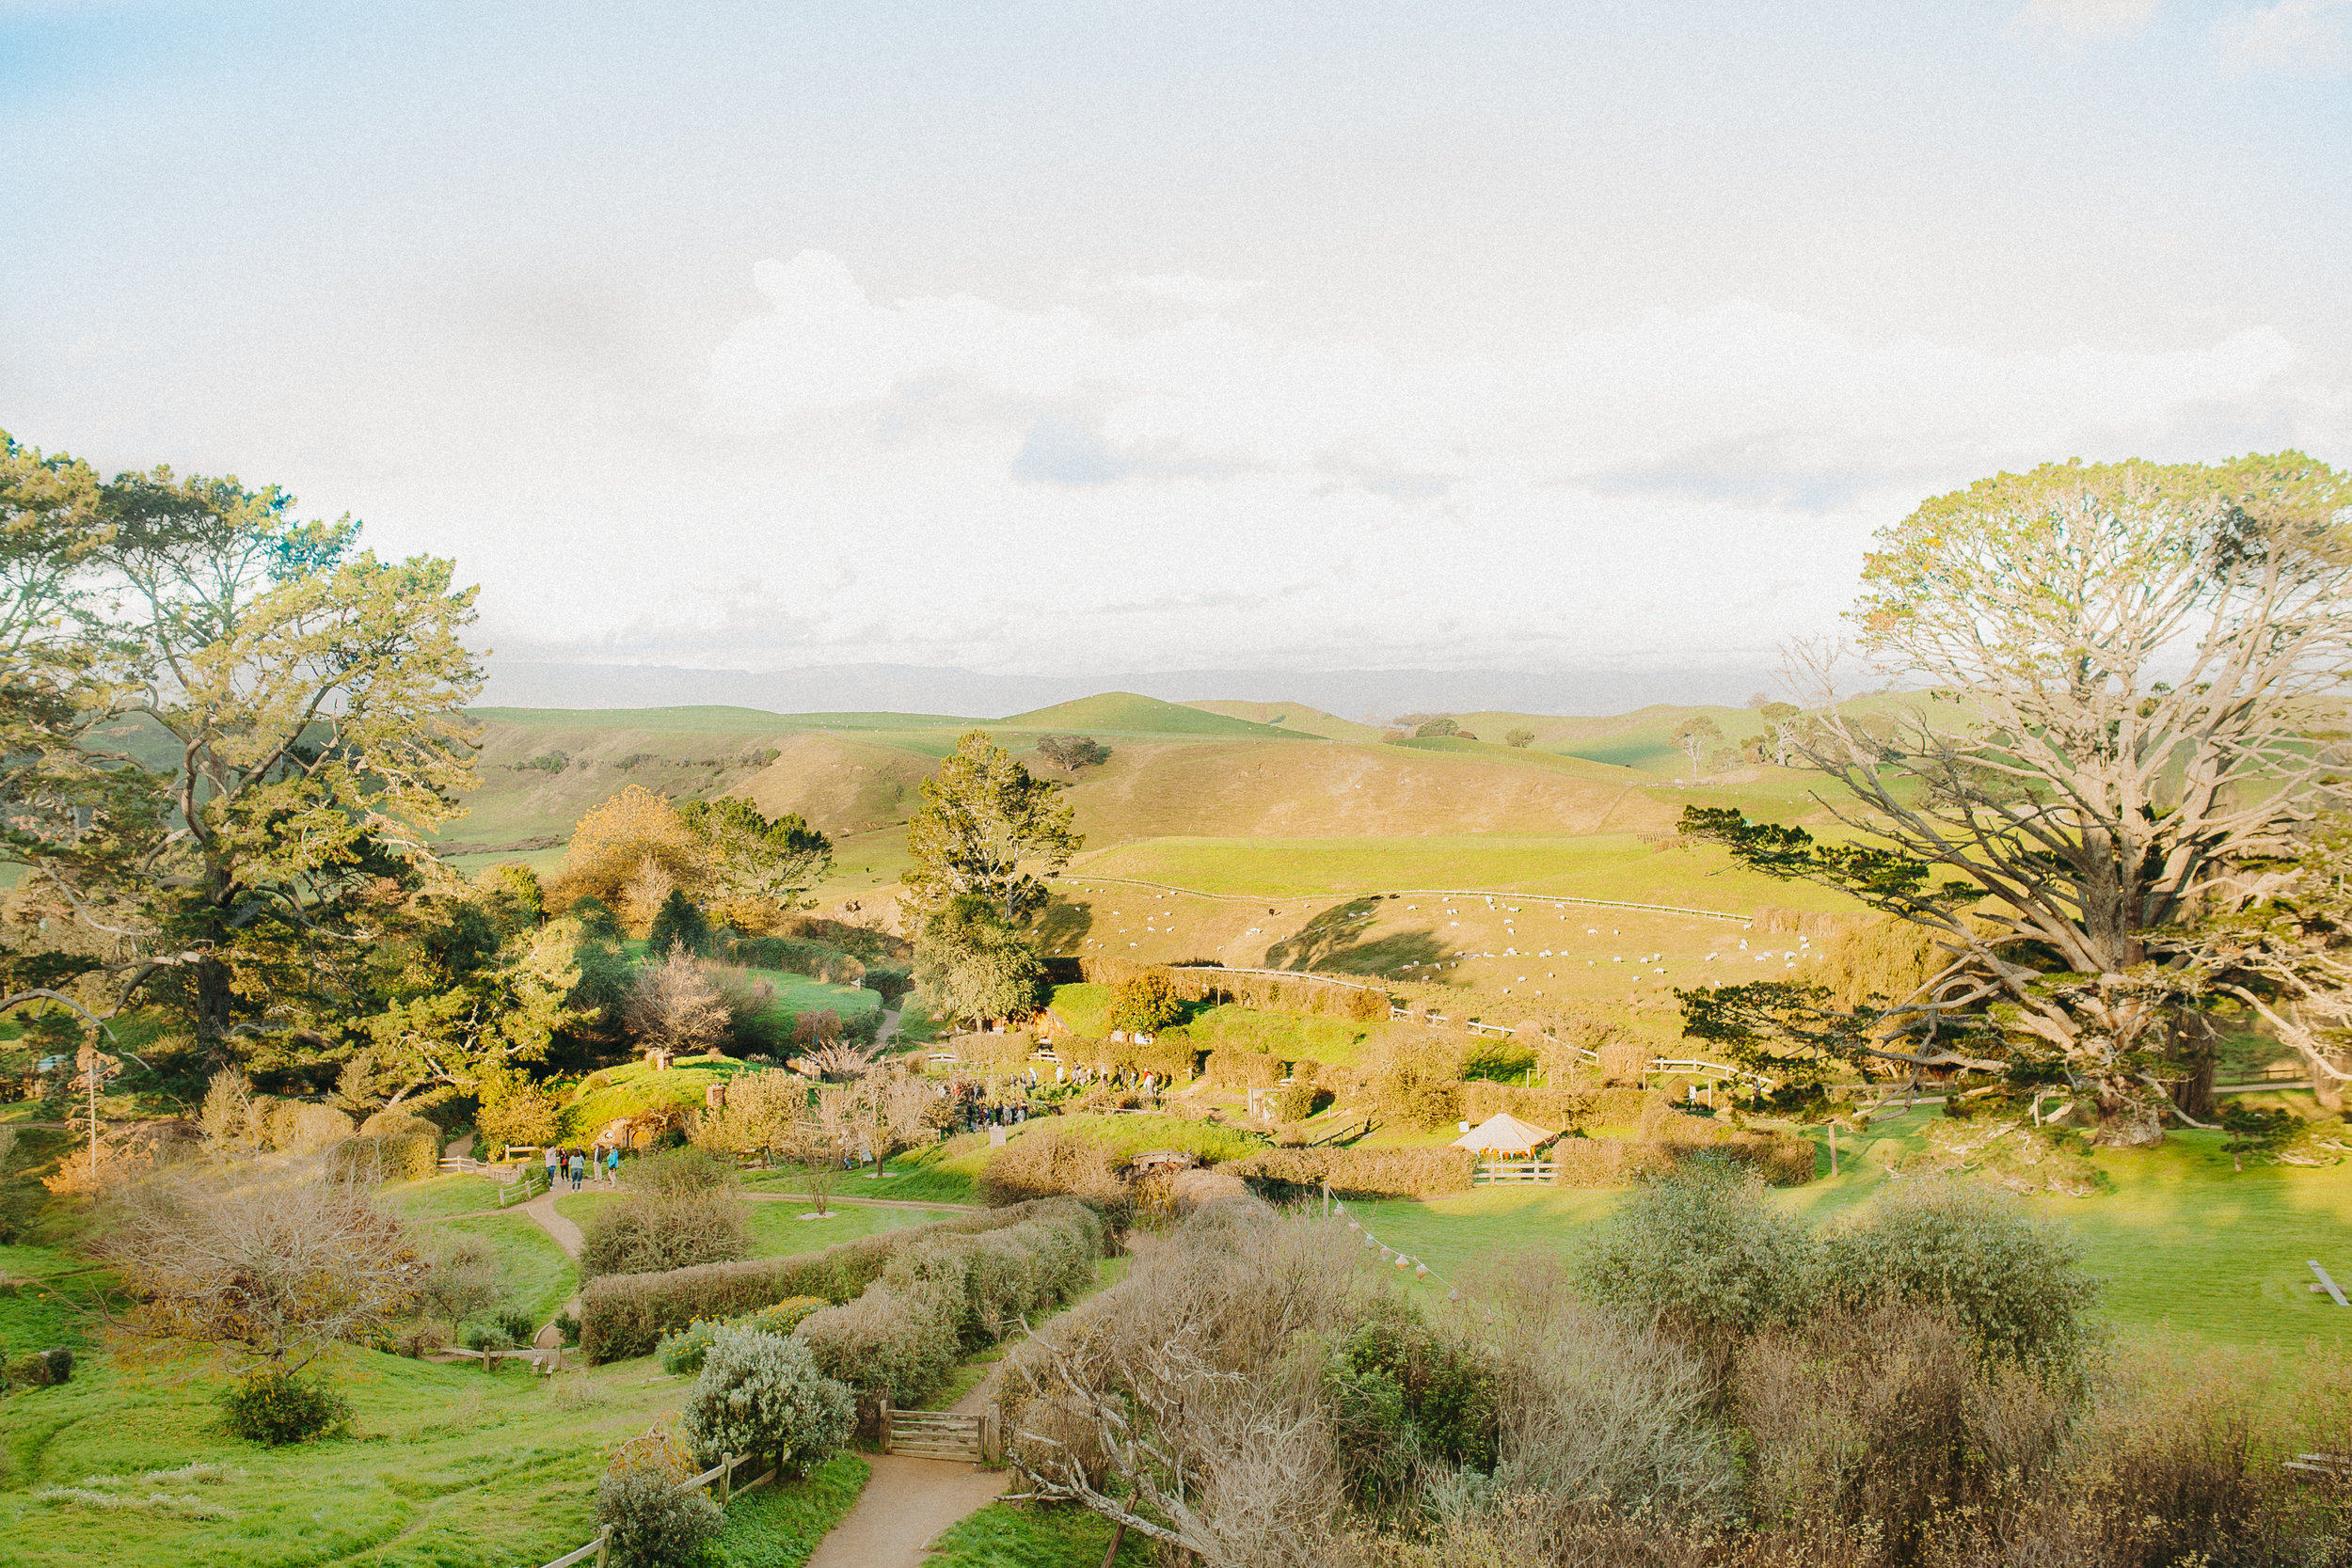 hobbiton-new-zealand-lord-of-the-rings-tour-6.jpg